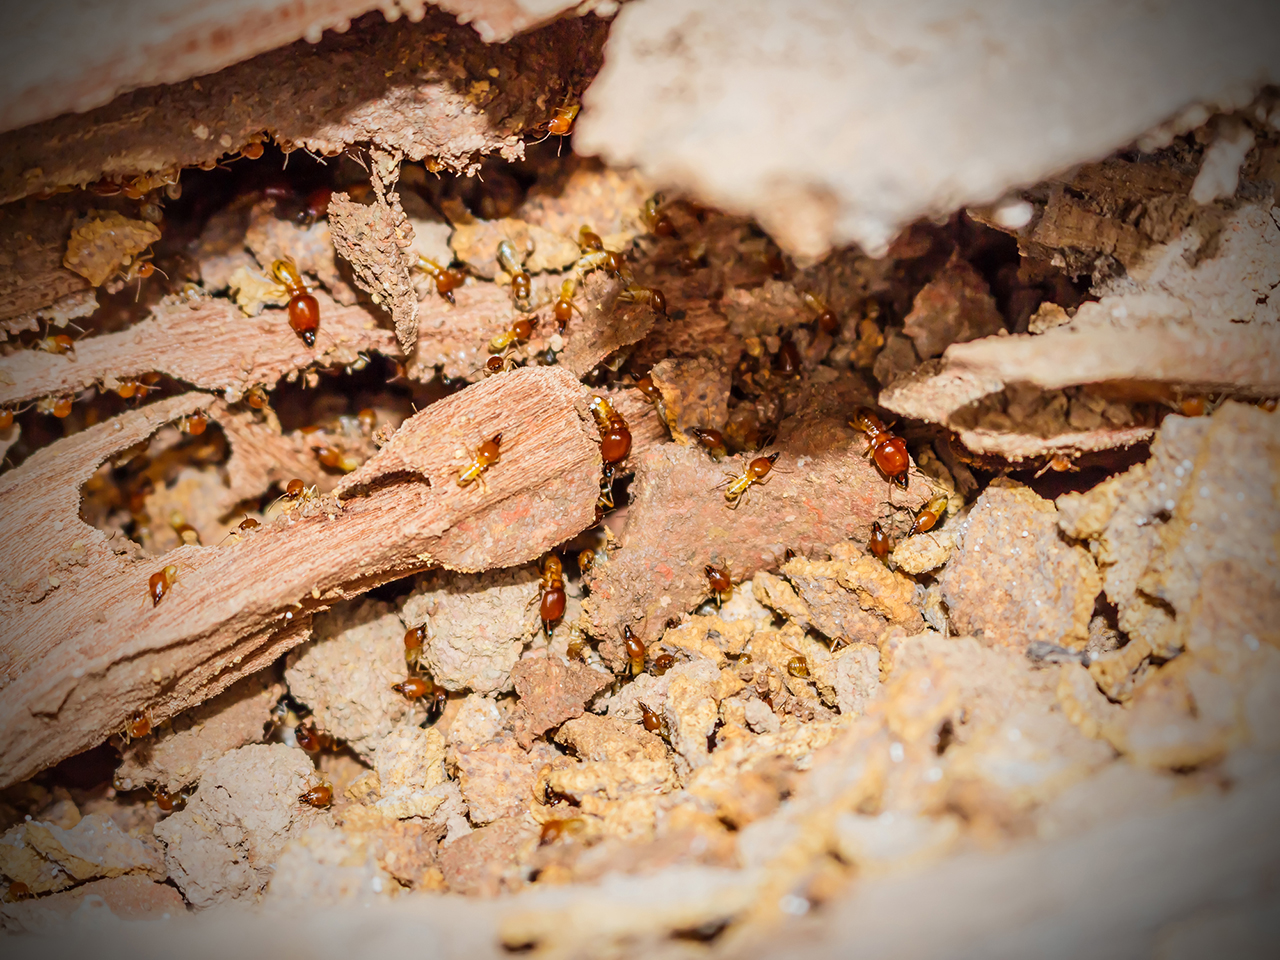 How to Get Rid of Termites at Your Home